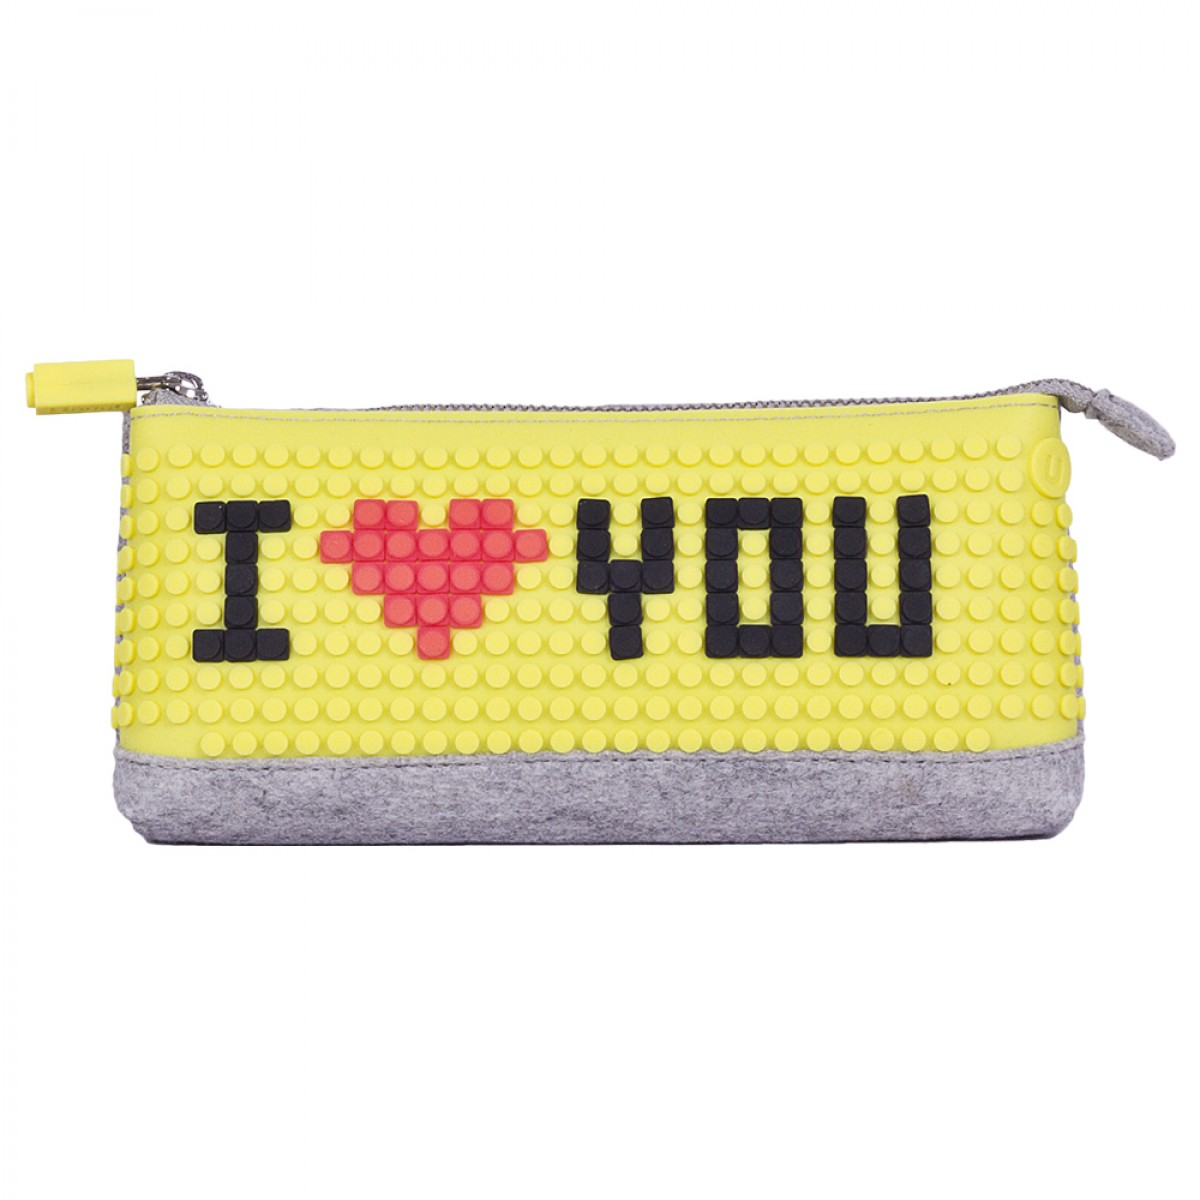 Upixel Pencil Case Yellow Wallets Online